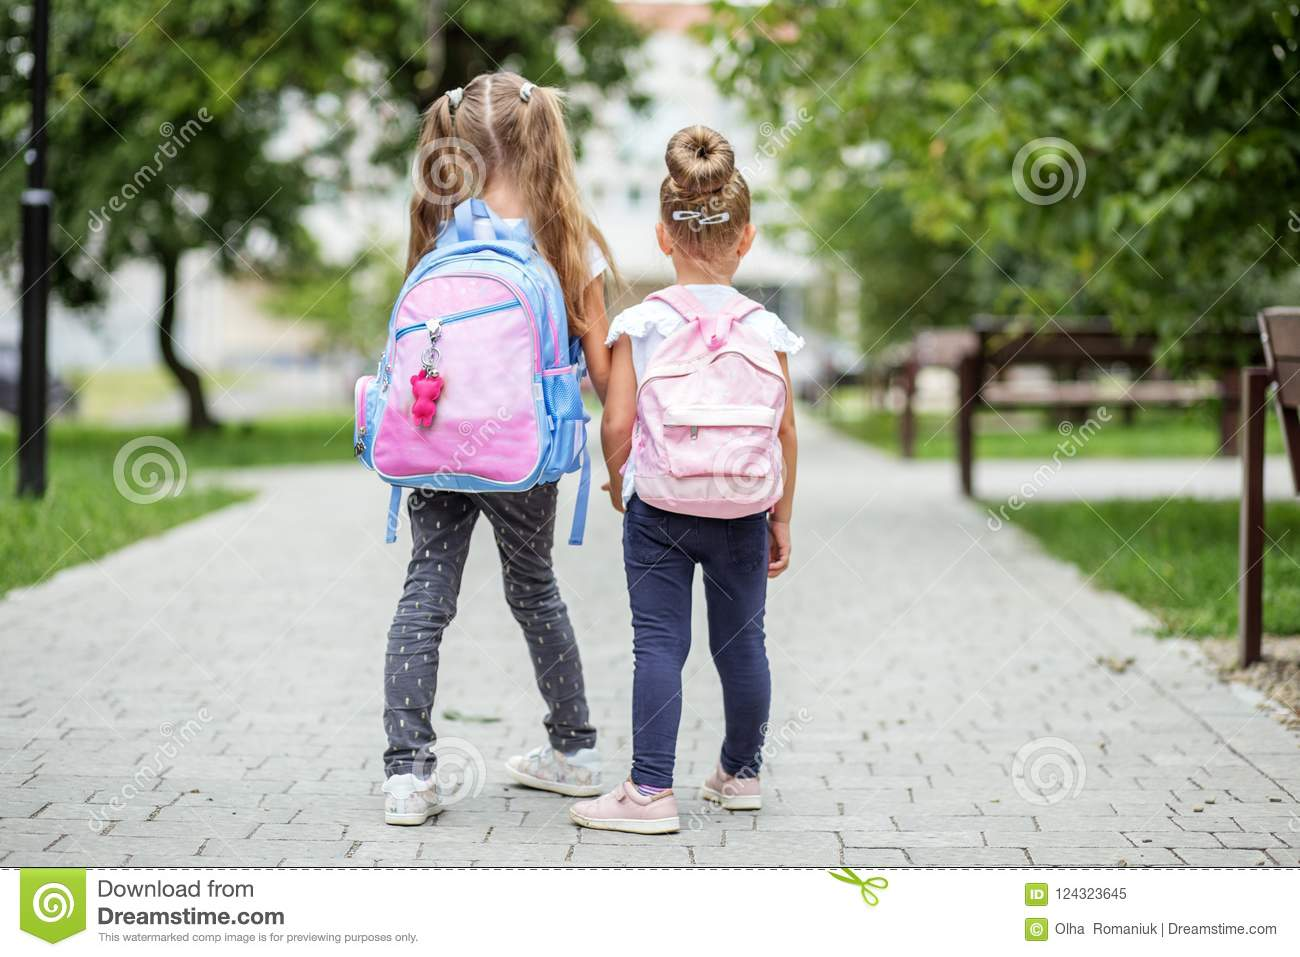 Two Kids Go To School With Backpacks The Concept Of School Study